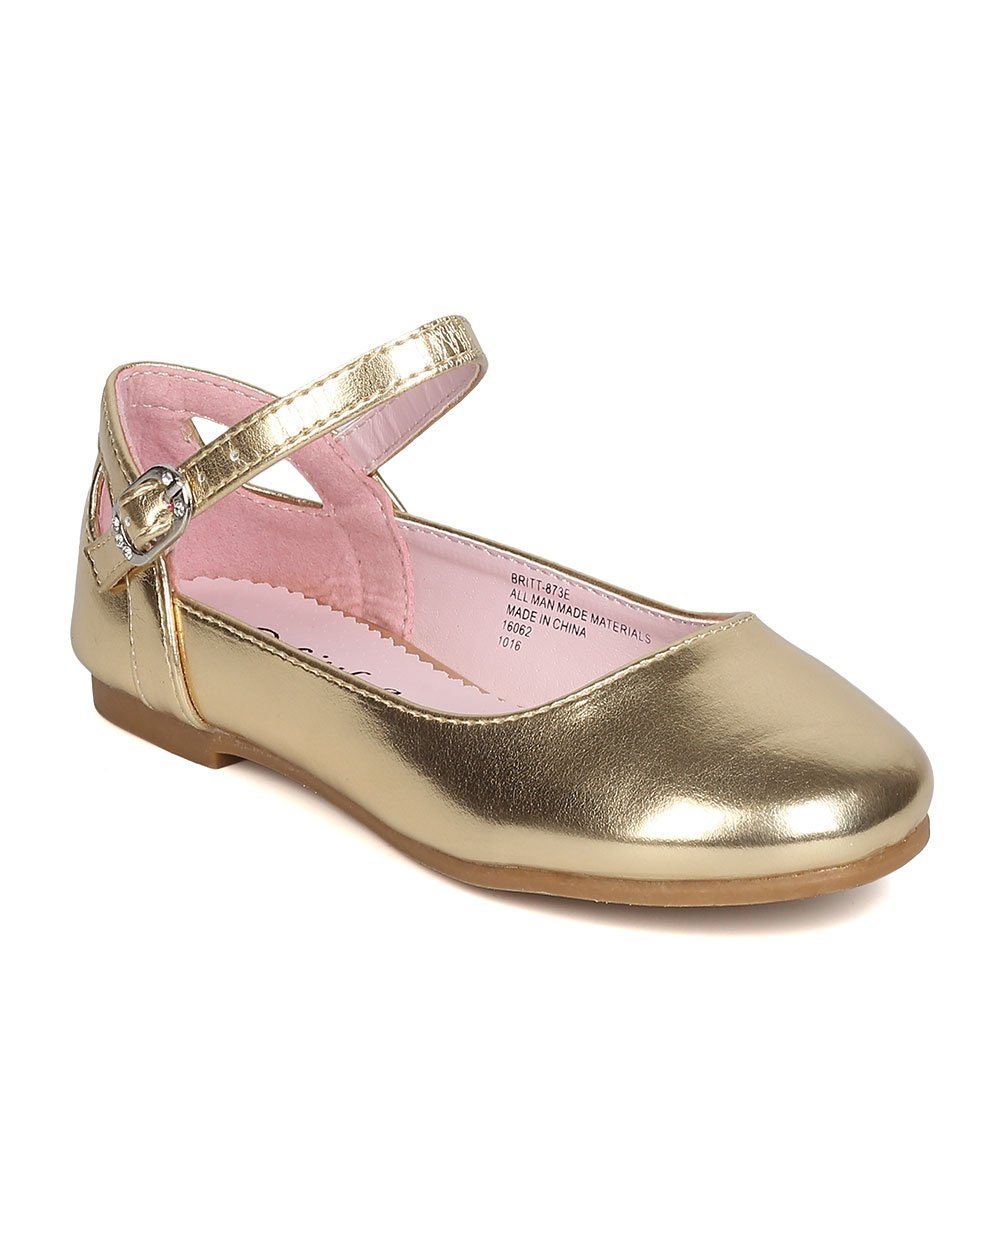 Girls Metallic Leatherette Ankle Strap Cut Out Ballet Flat GB36 - Gold (Size: Toddler 8) by Little Angel (Image #1)